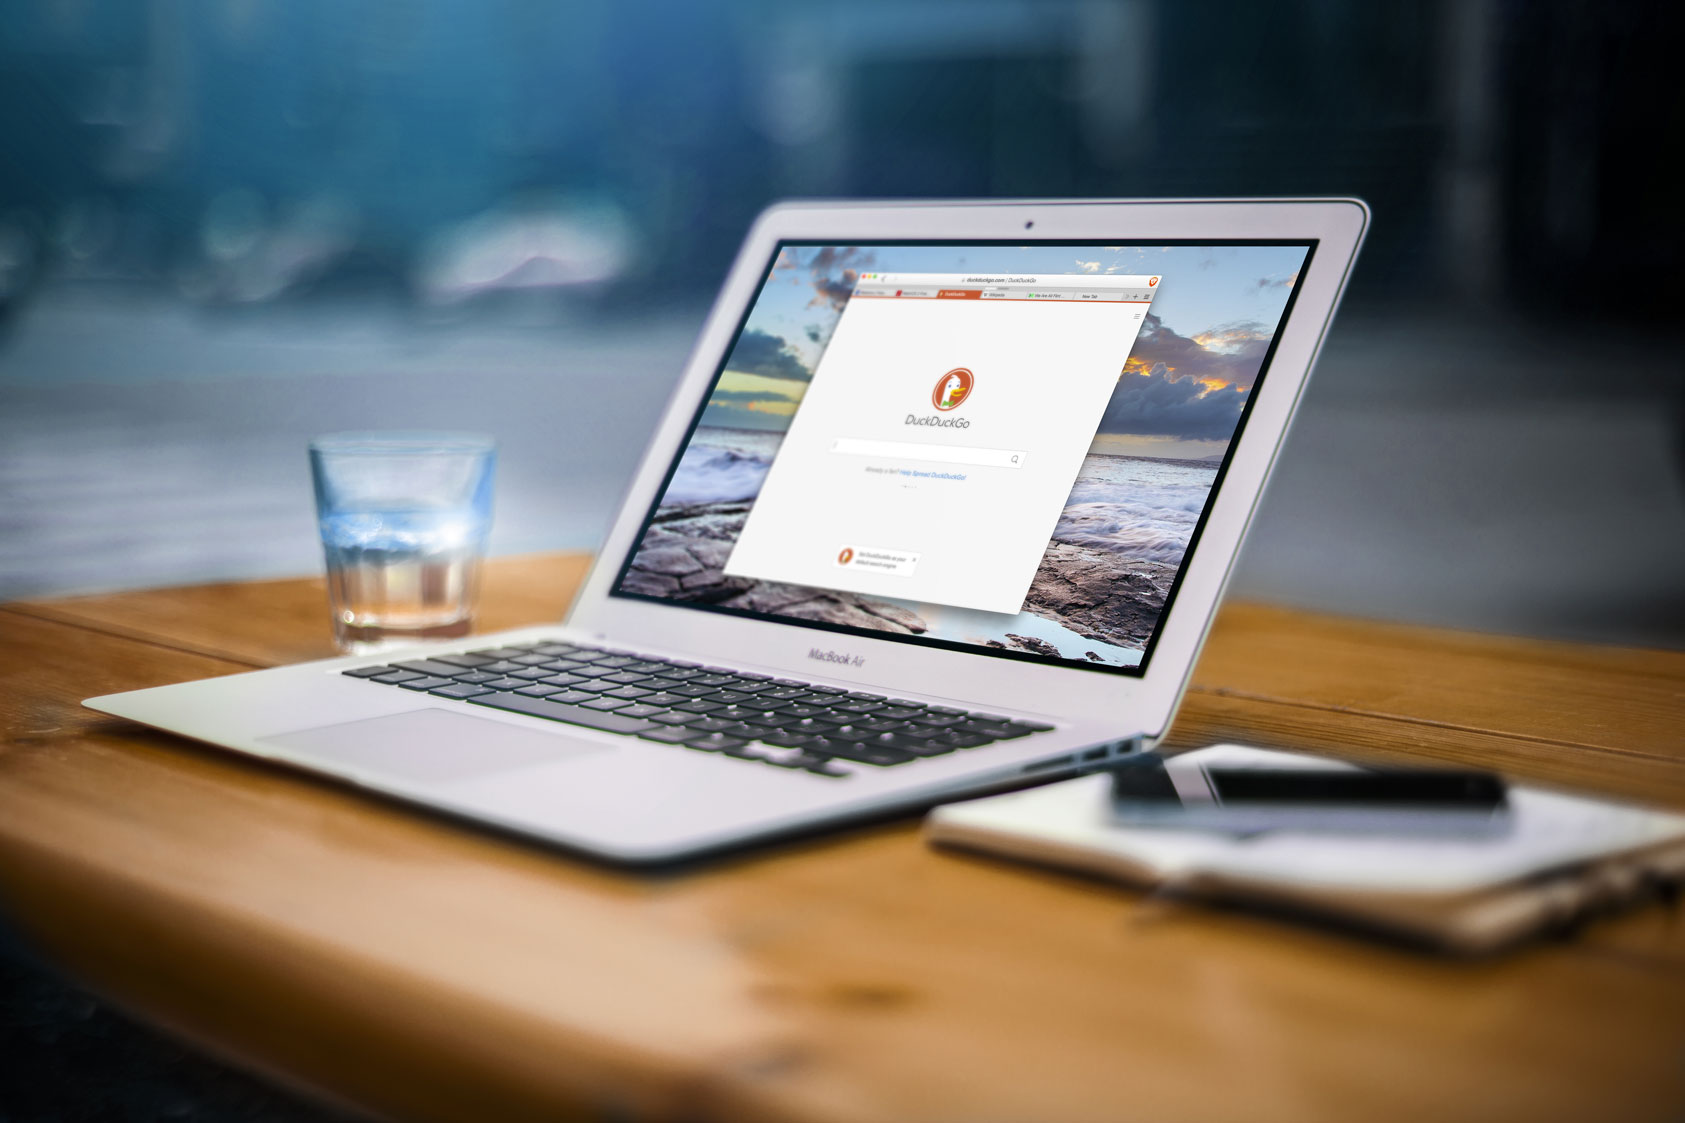 The Brave browser launches ads that reward users for viewing